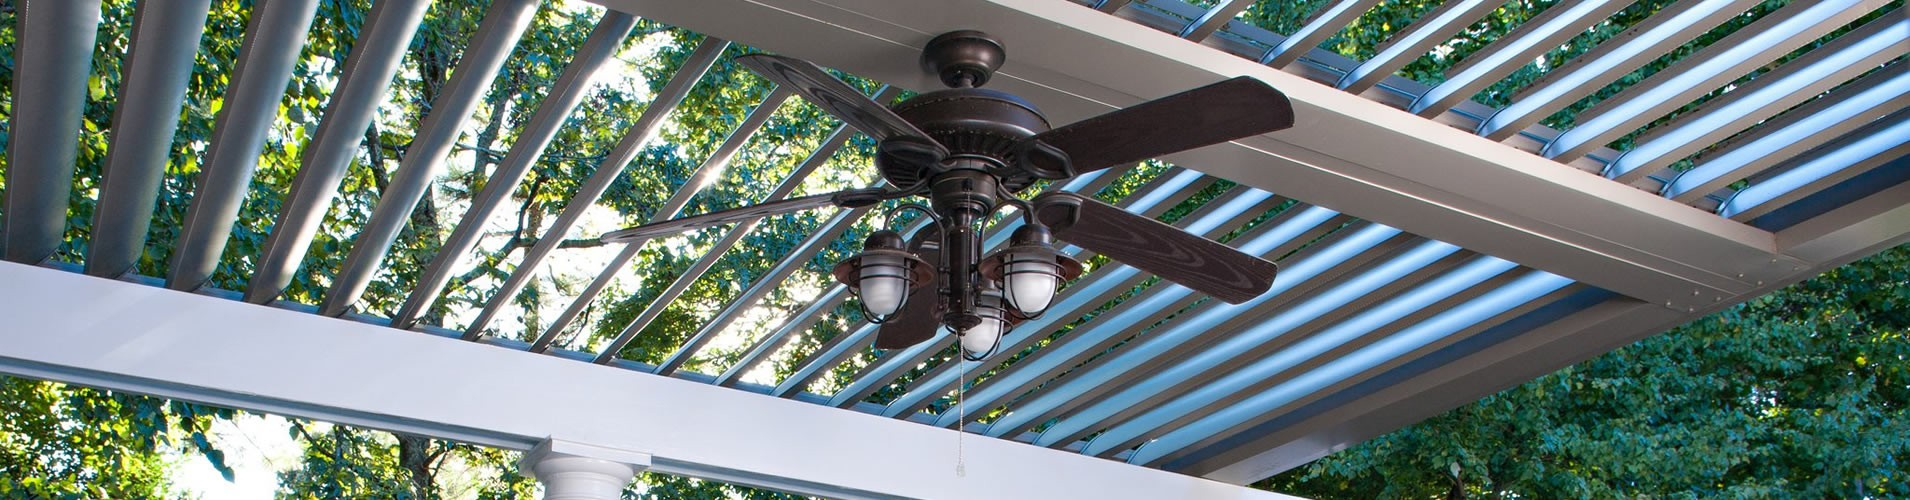 Patio Covers Louvered Roof San Antonio